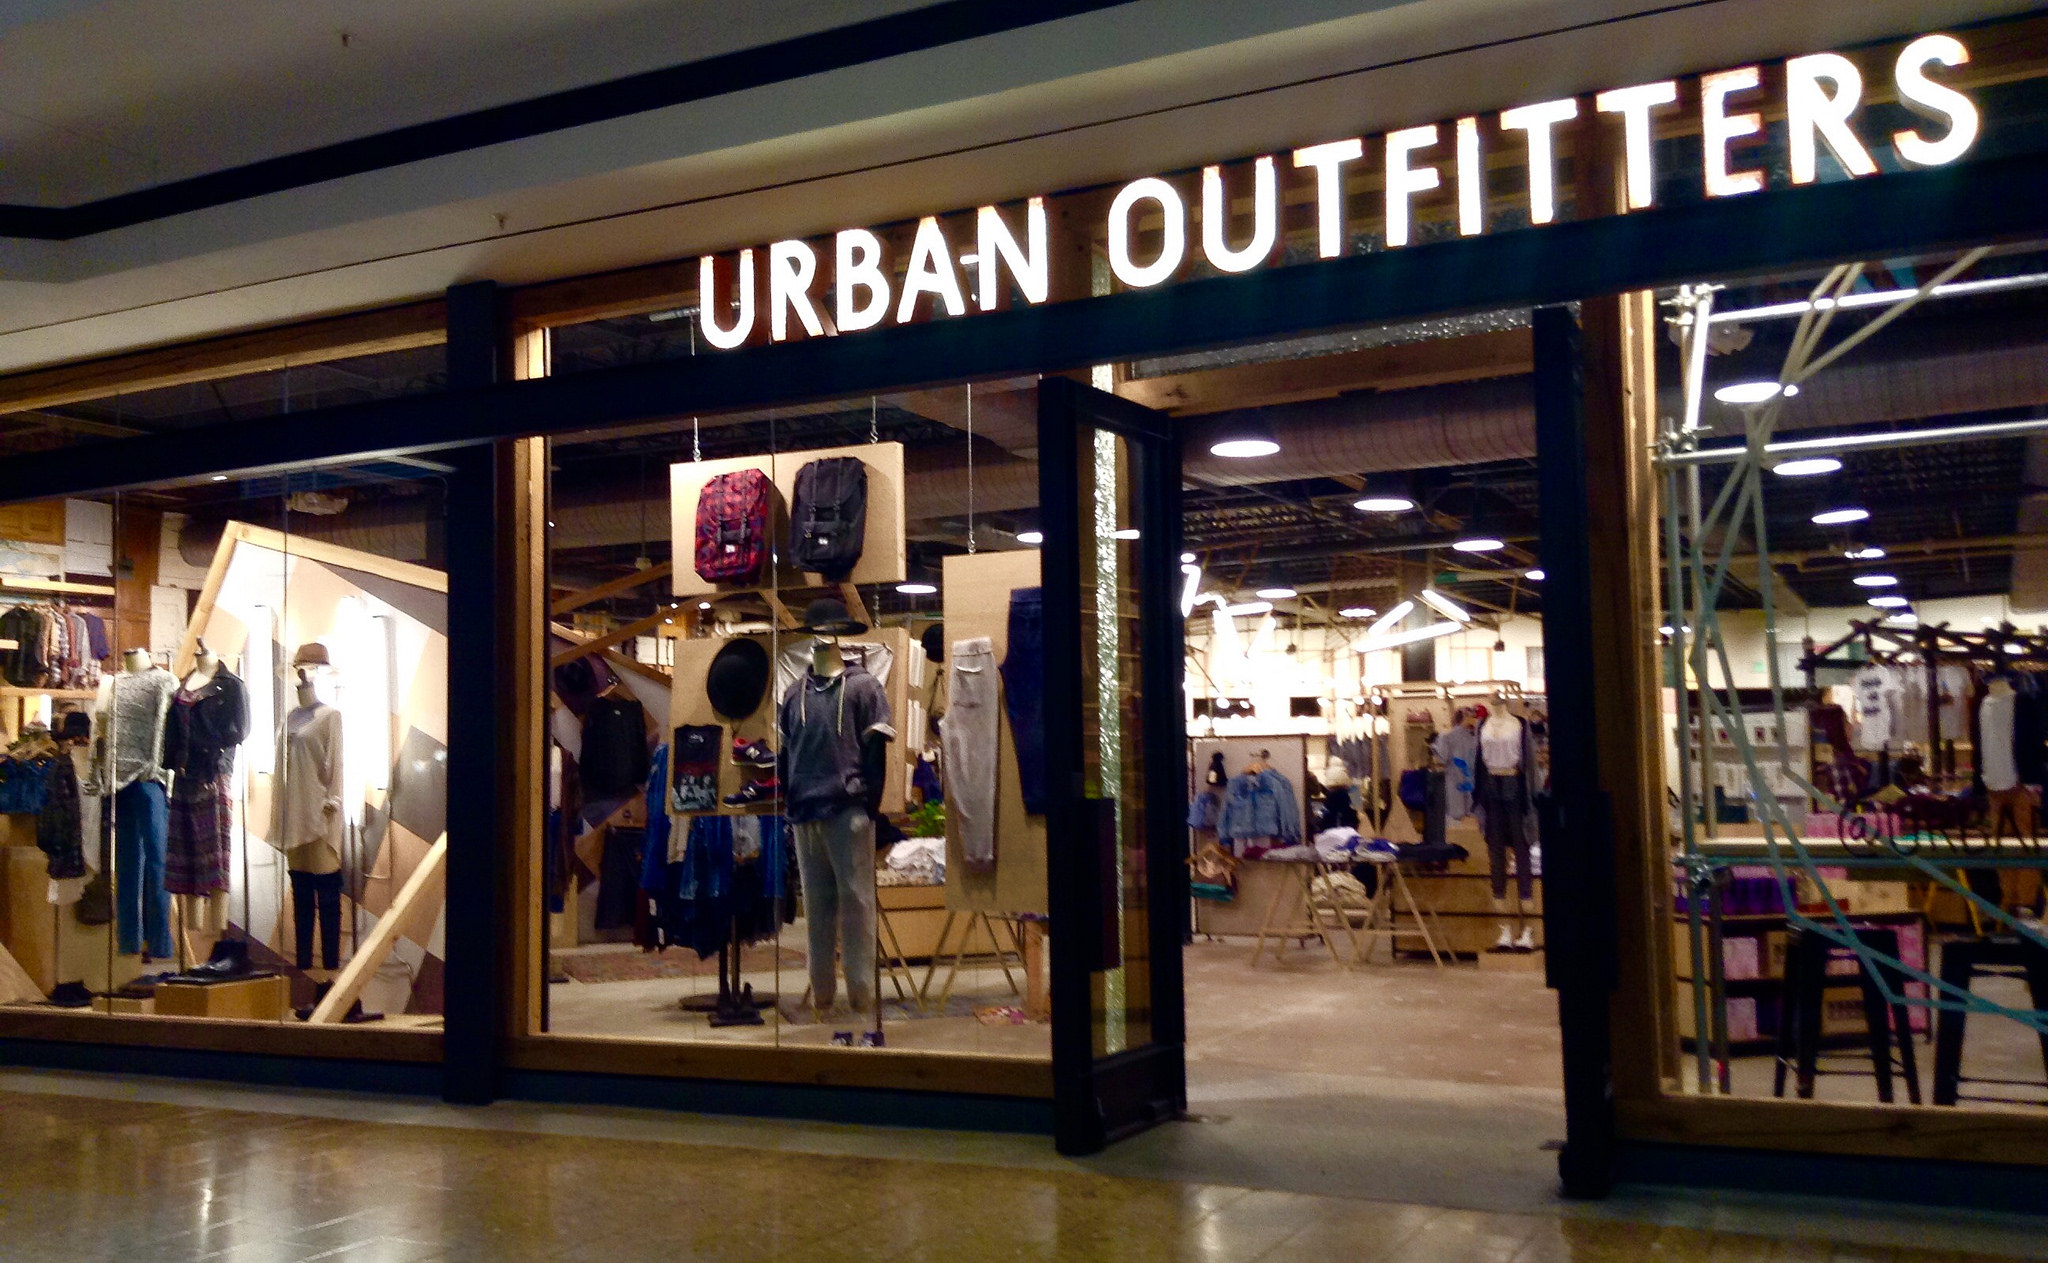 Urban Outfitters is one of The biggest names in fast fashion